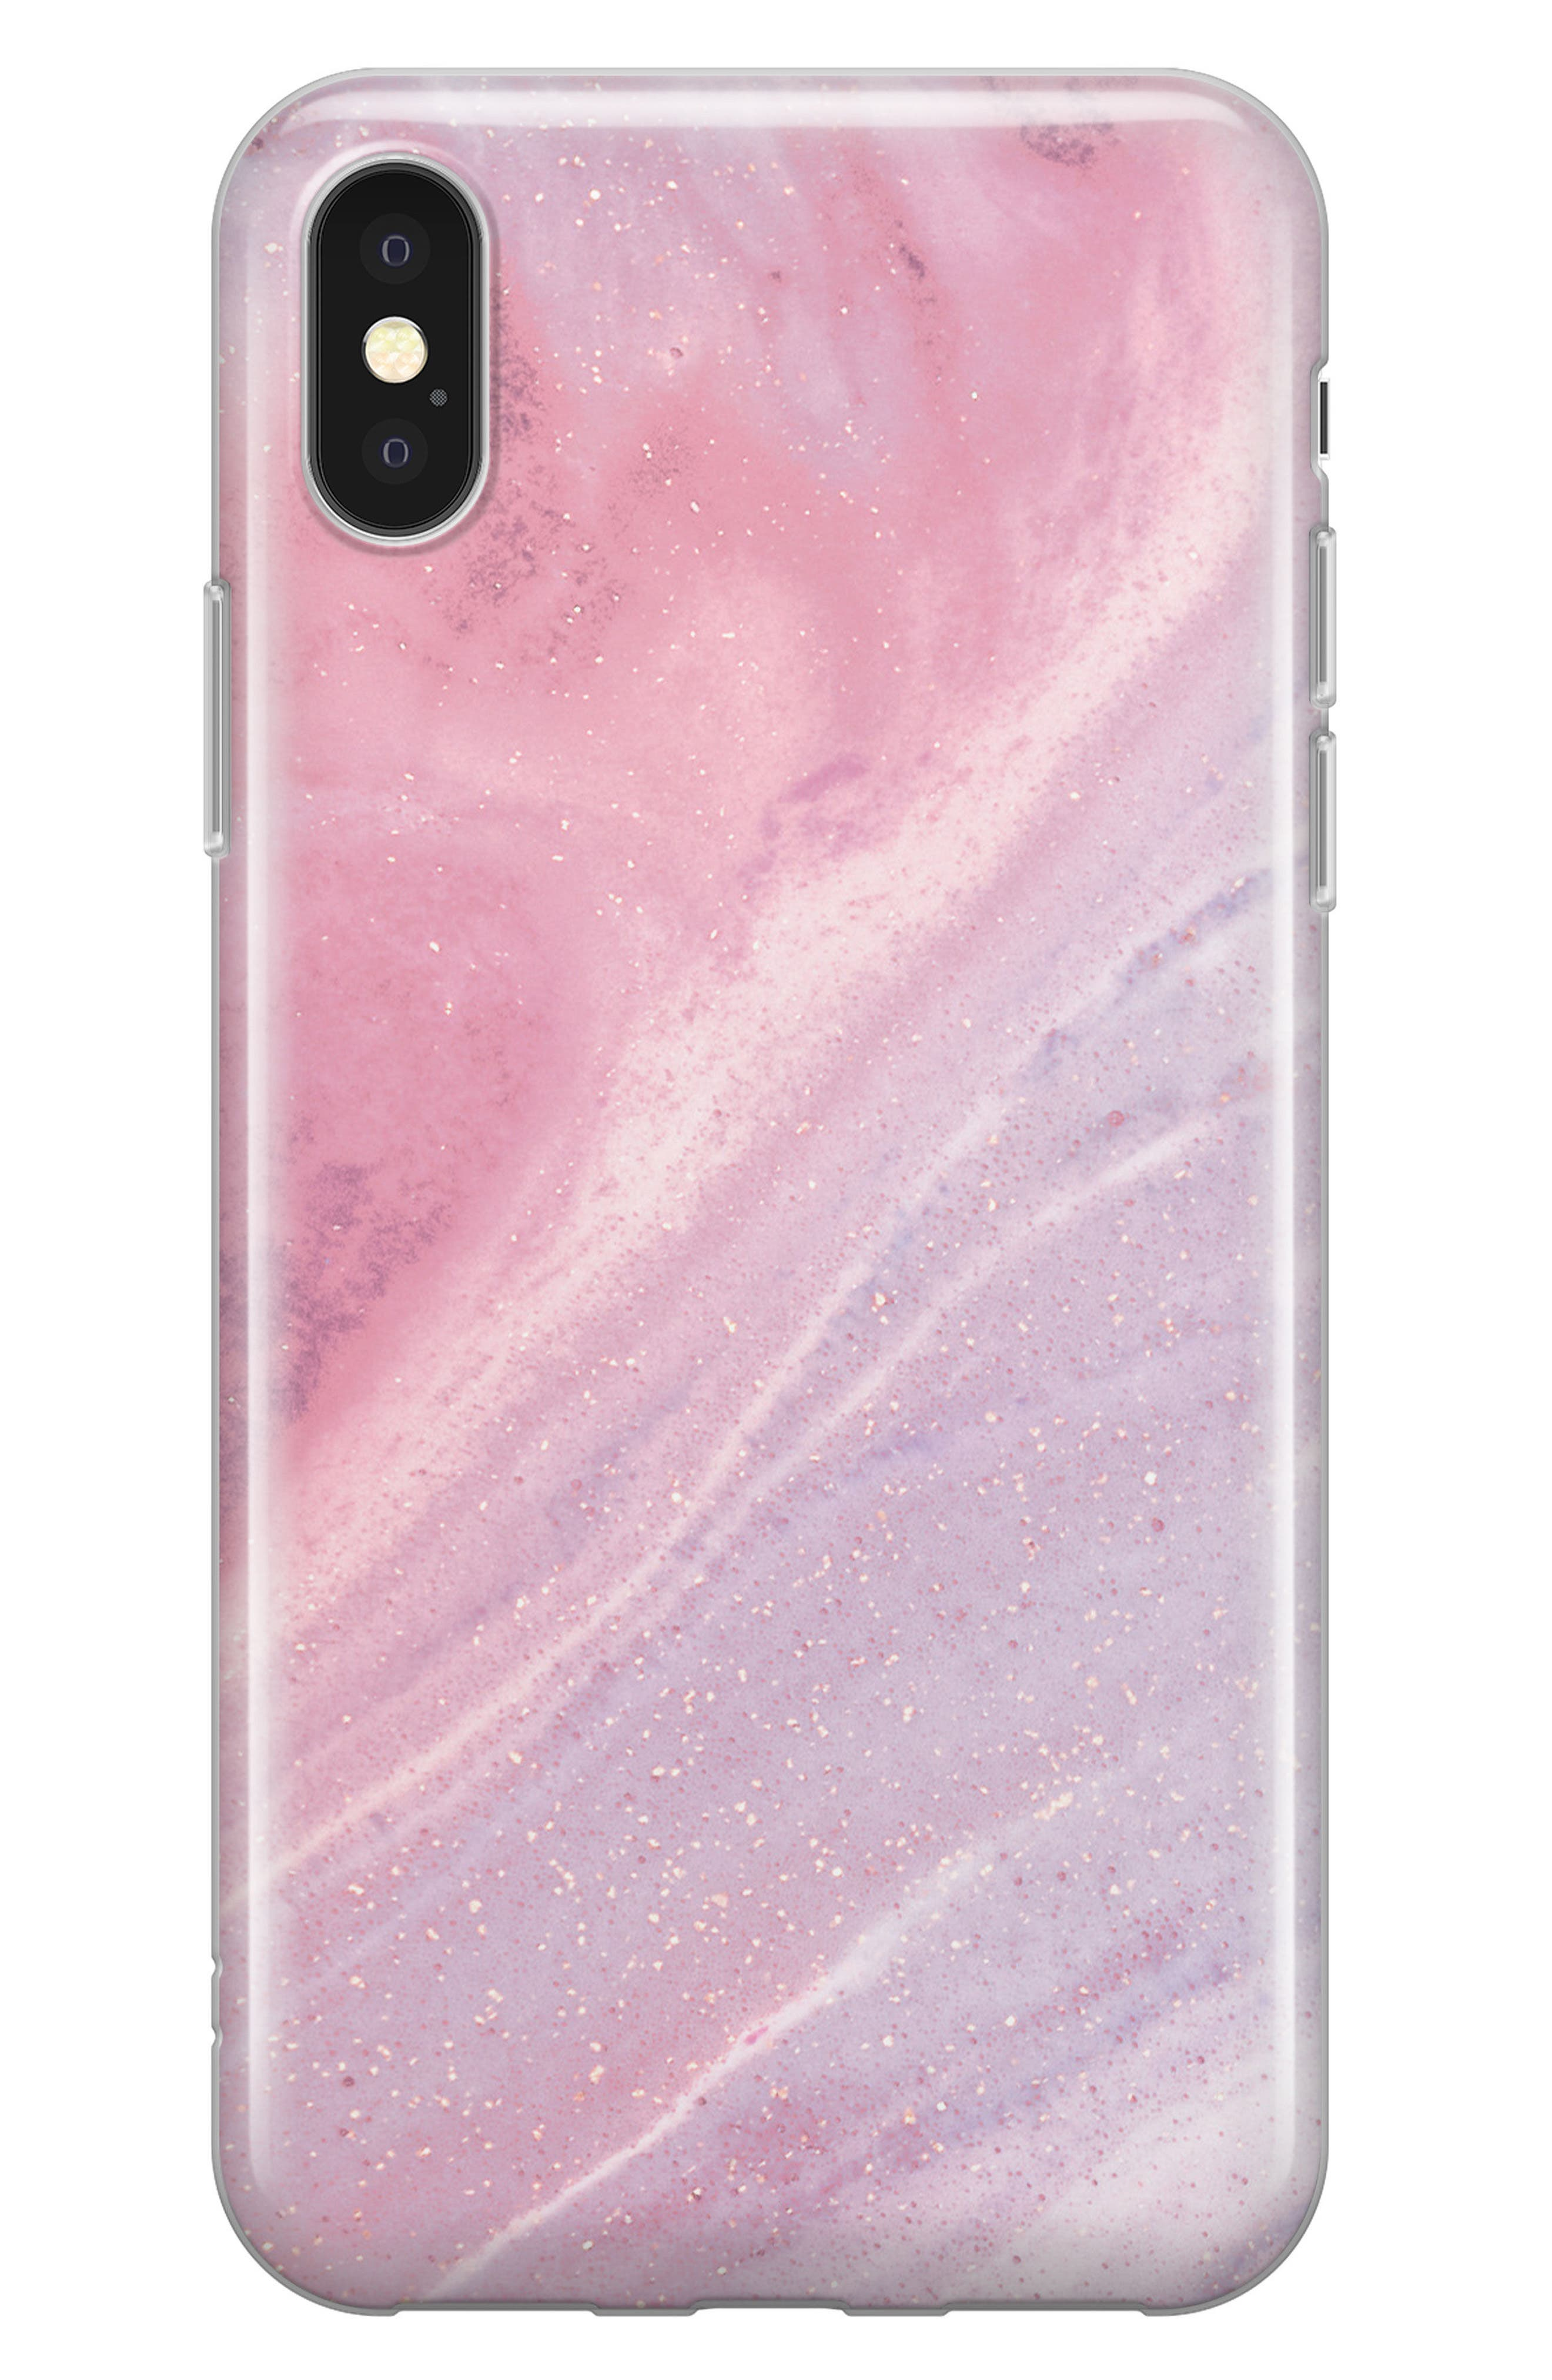 Main Image - Recover Flow iPhone X Case